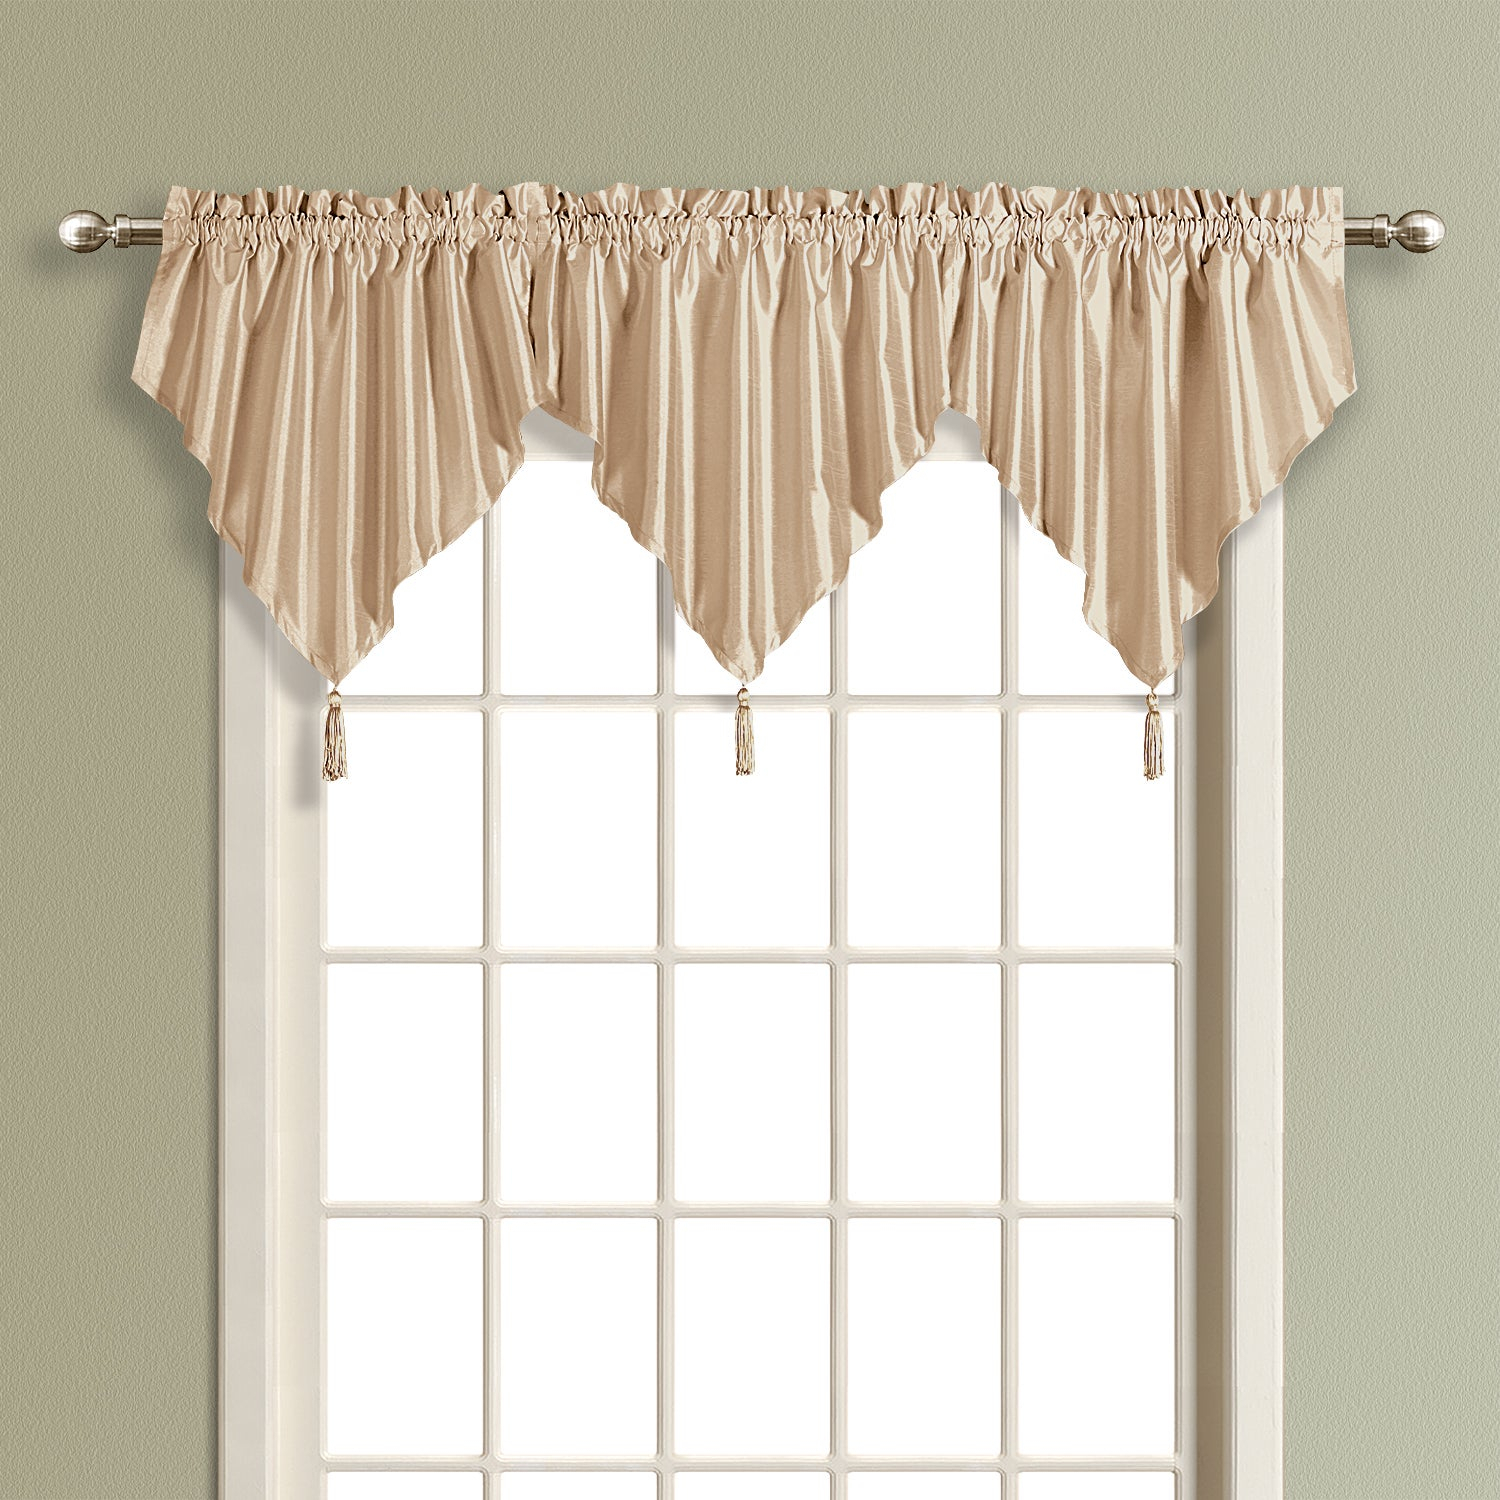 Luxury Collection Anna Light Filtering Ascot Valance Intended For Luxury Light Filtering Straight Curtain Valances (View 6 of 20)